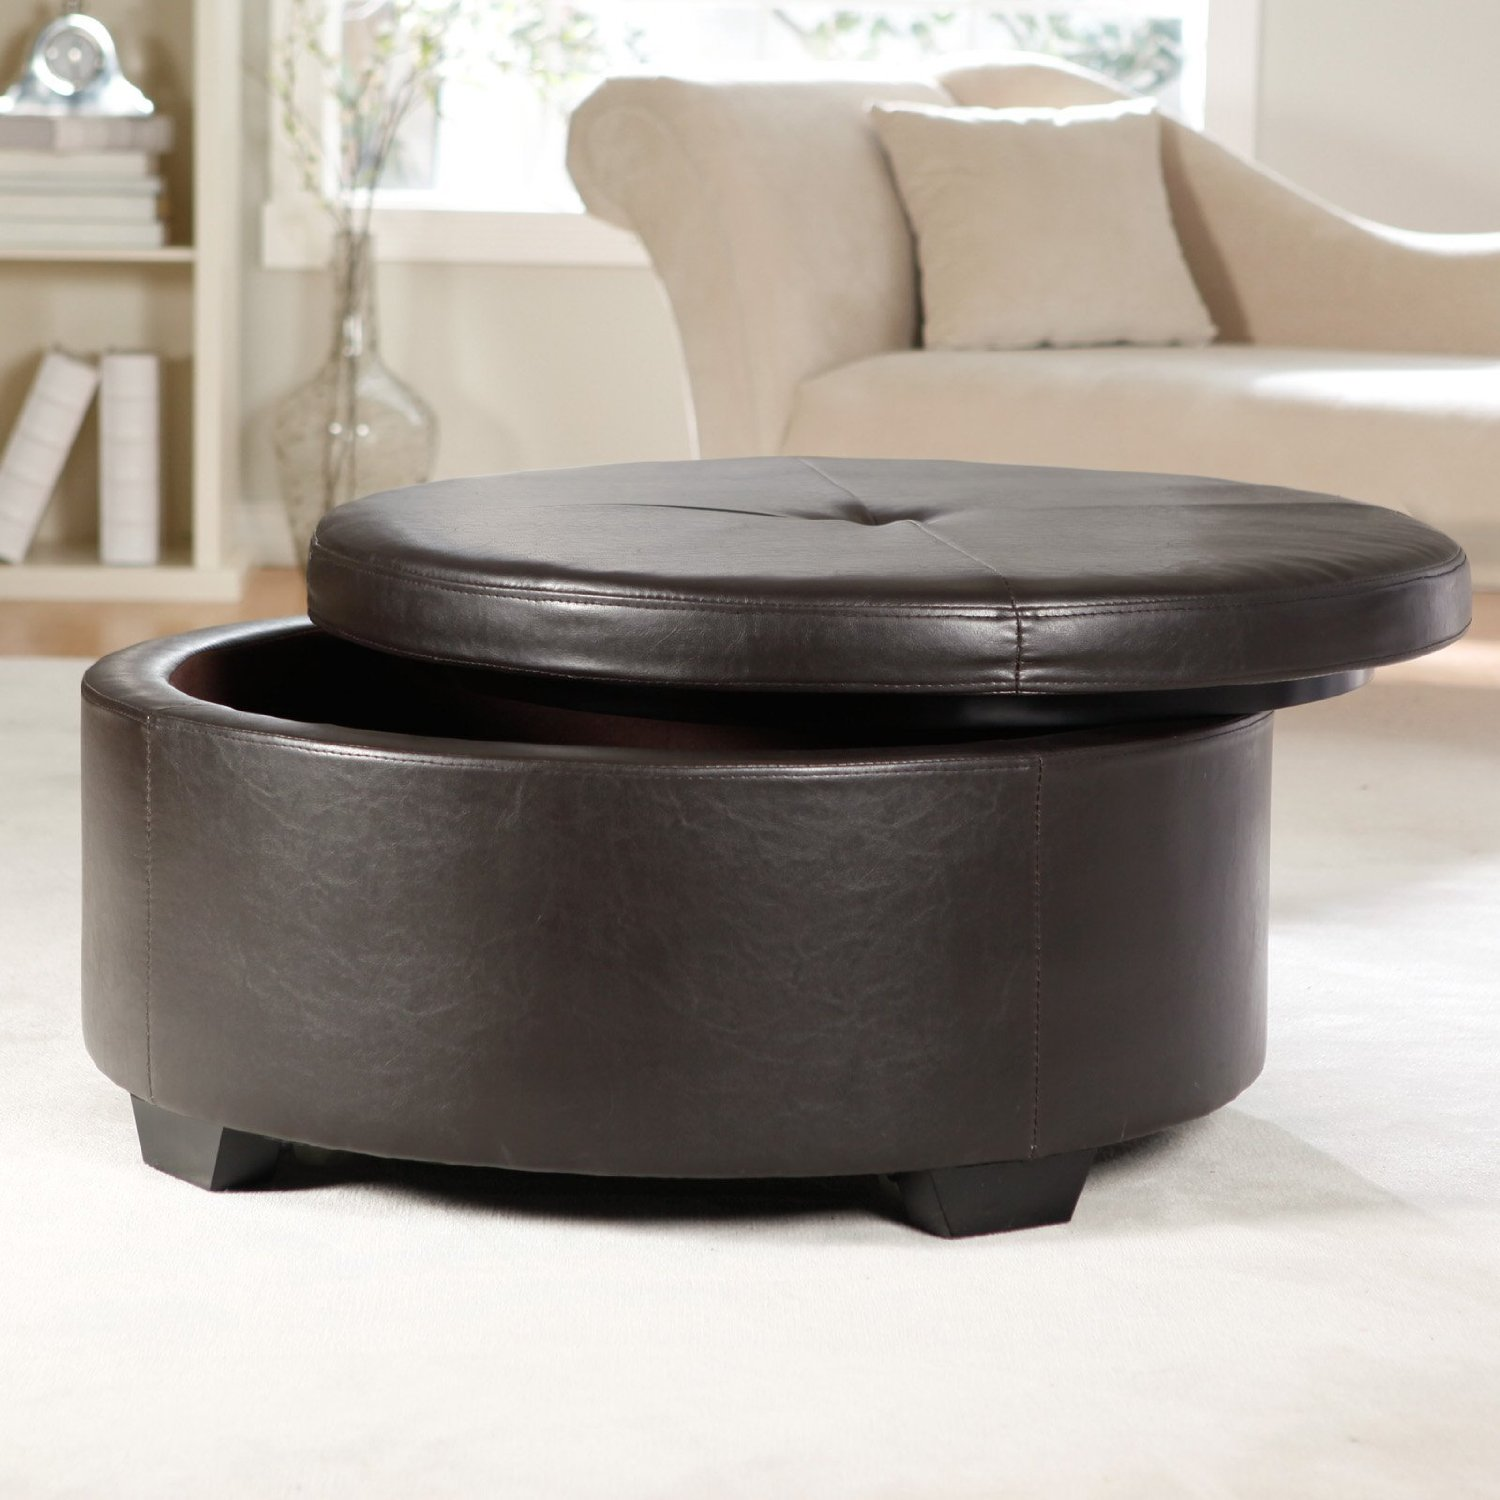 Furniture Living Room Rounded Black Ottoman Mixed Cream Velvet Sofa Black Leather Coffee Table With Storage 1 (Image 2 of 10)